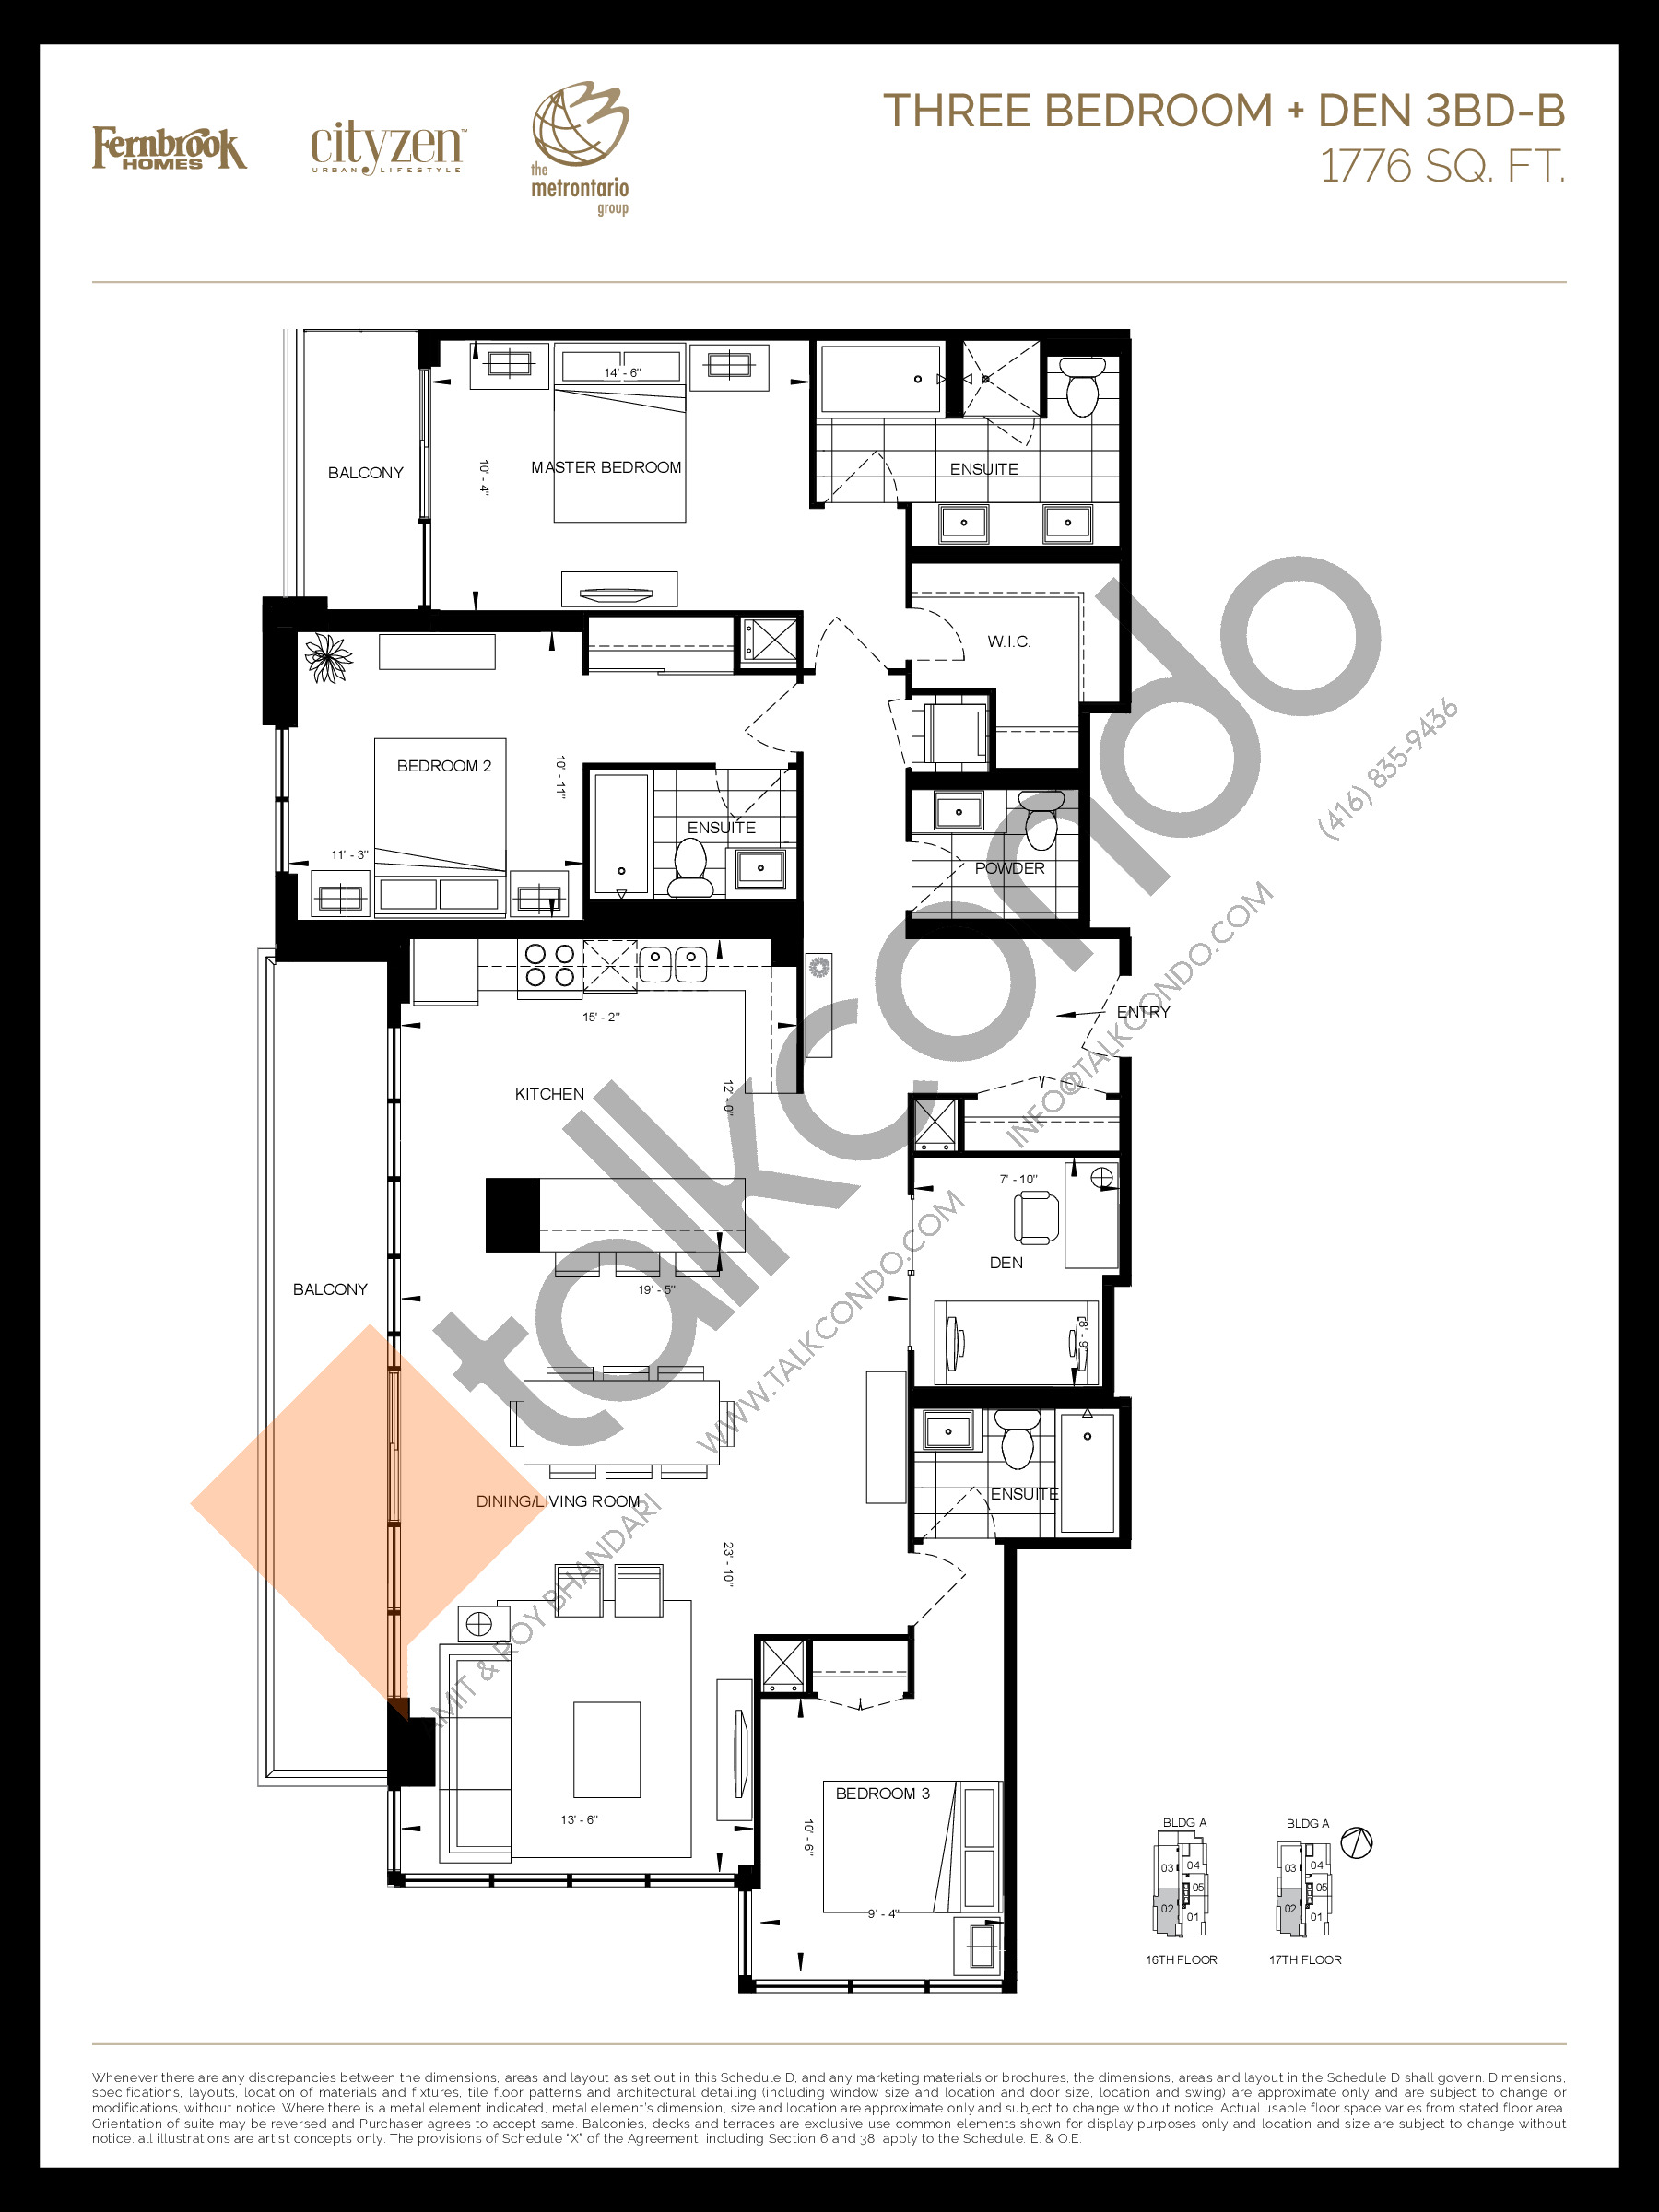 3BD-B Floor Plan at D'or Condos - 1776 sq.ft